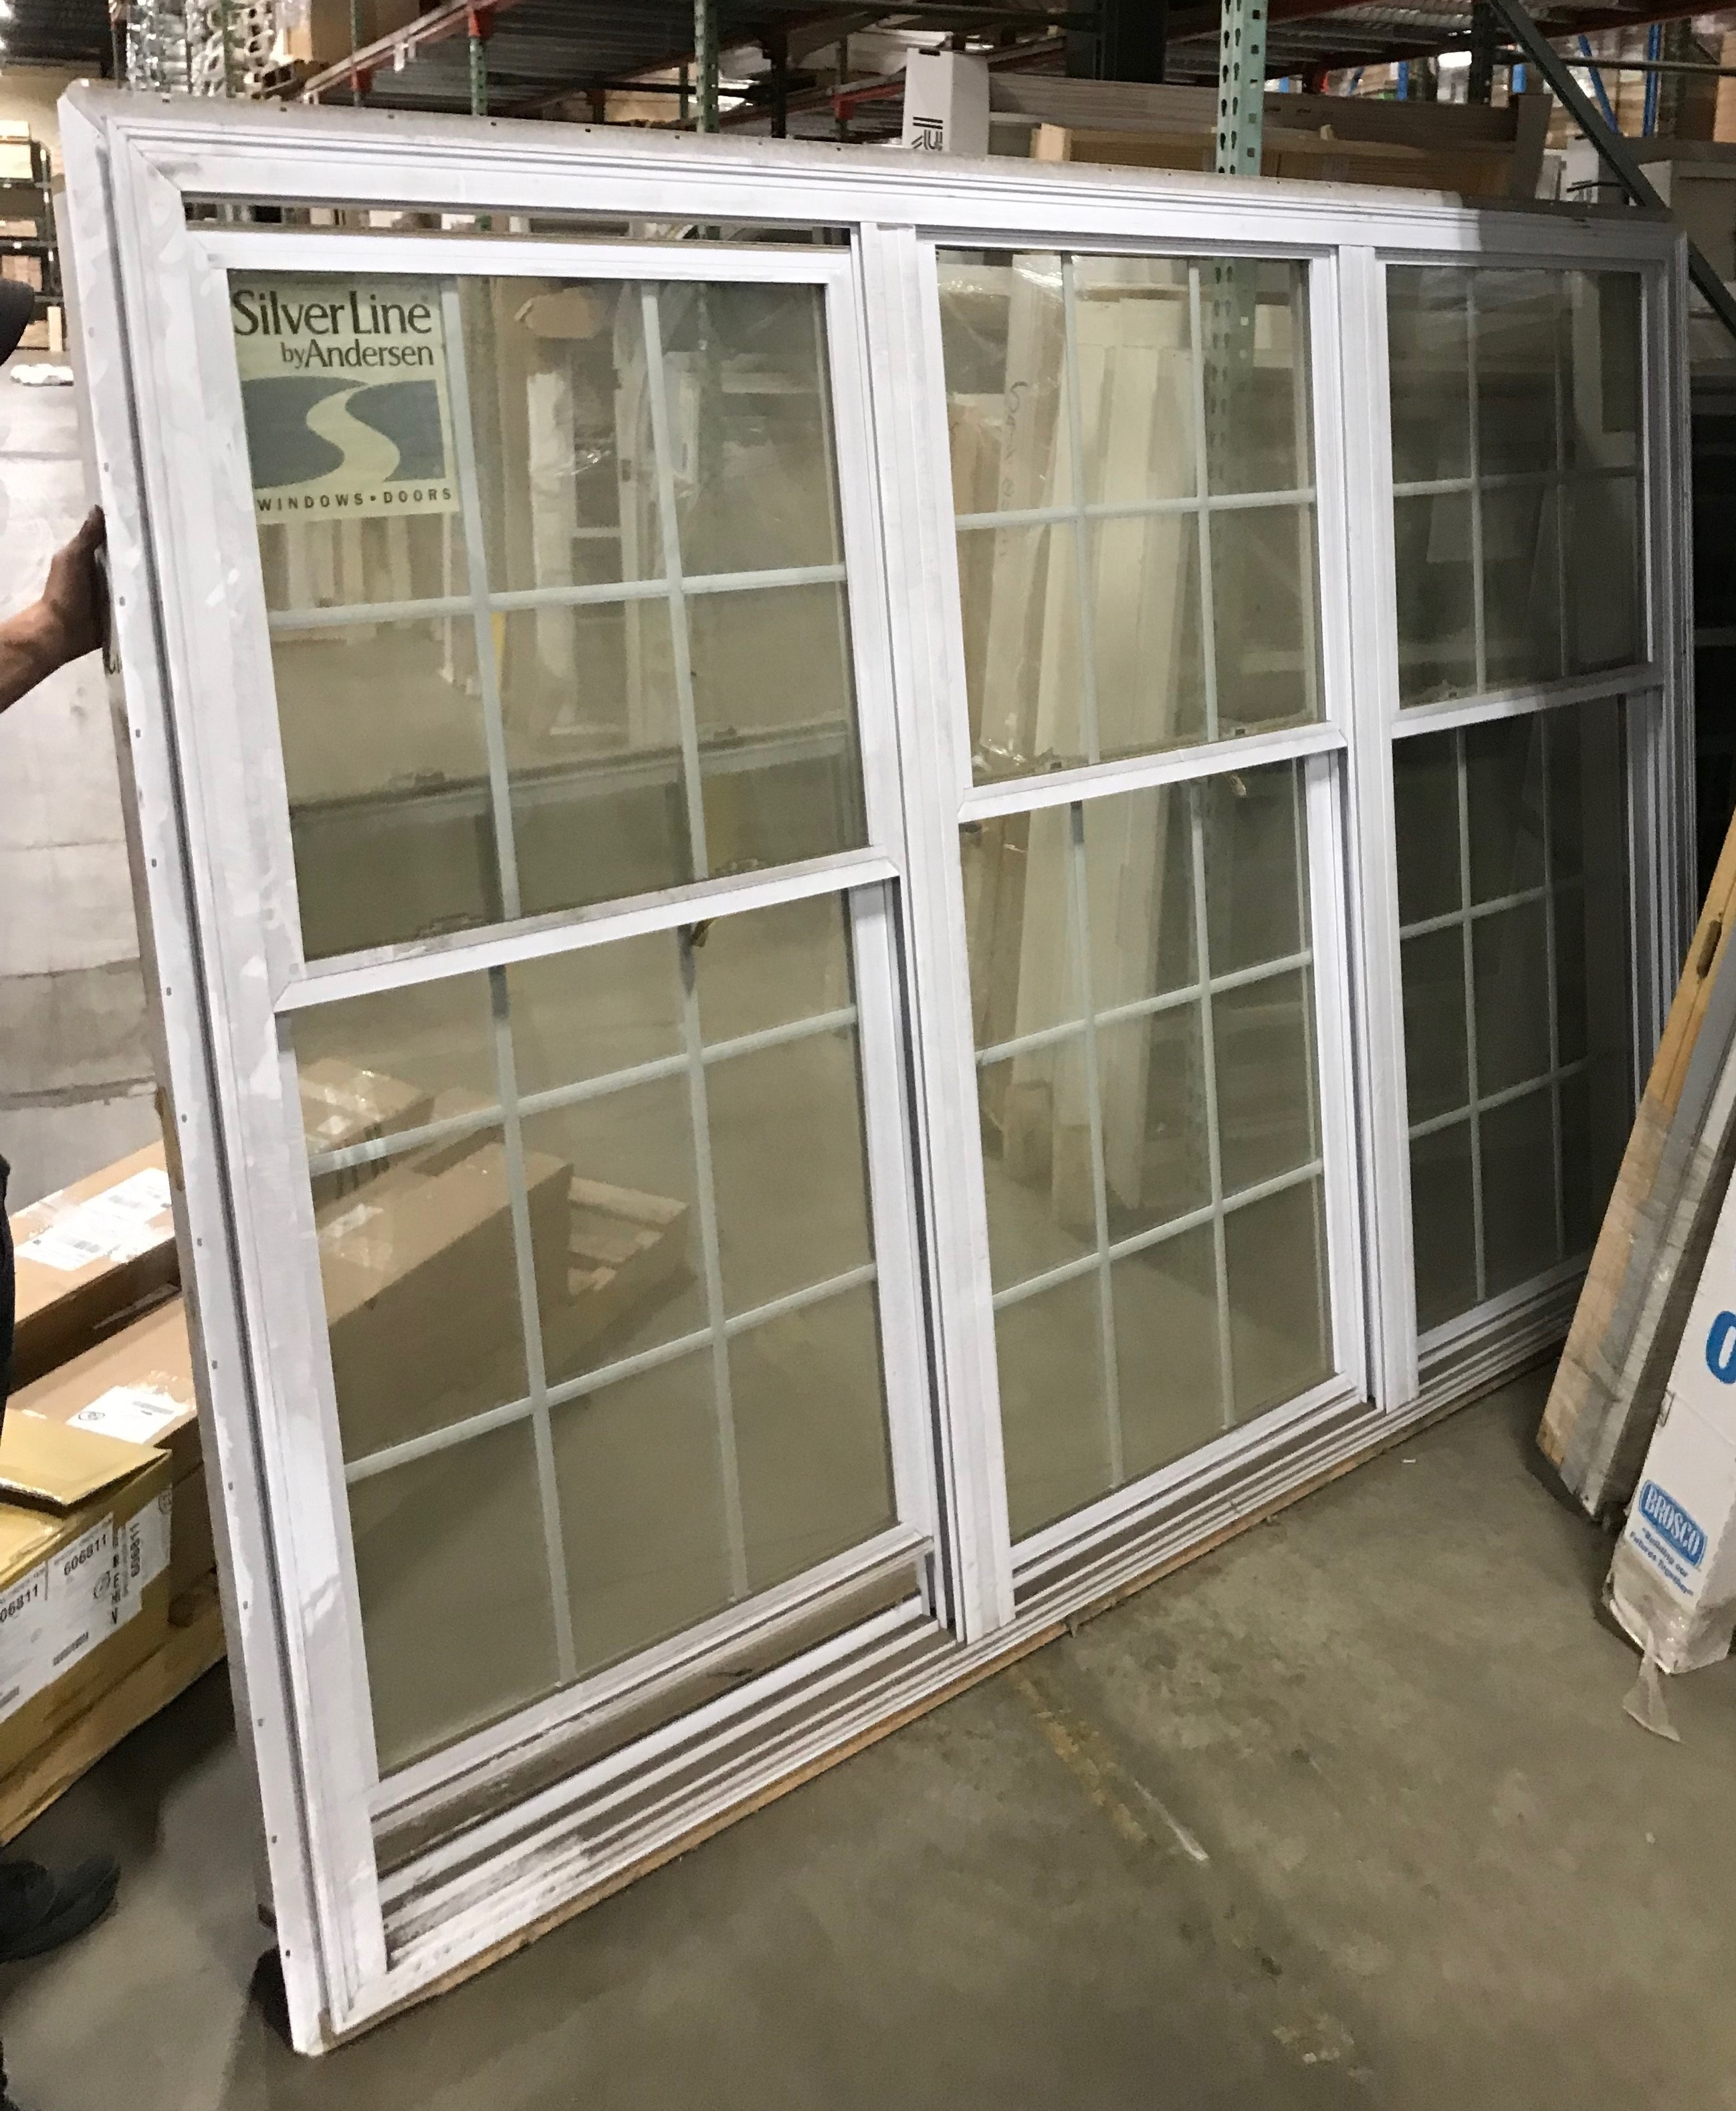 Andersen Silverline 3003v Double Hung Triple Window